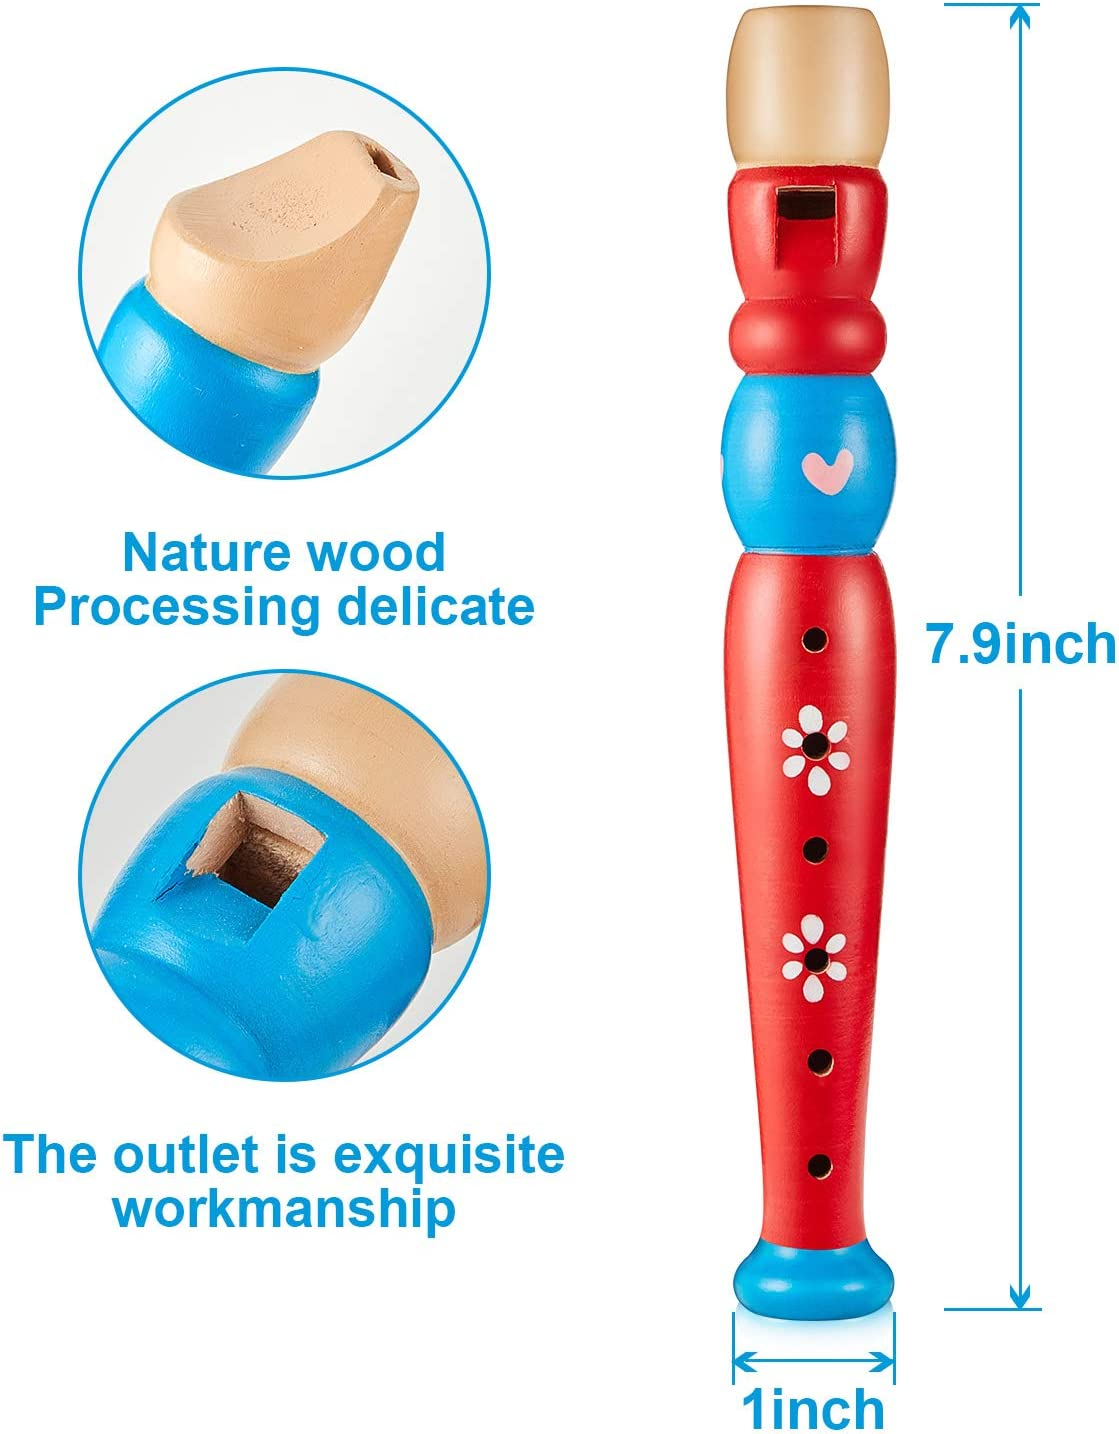 3 Pieces Wooden Recorders Toy Small Wooden Recorders Musical Instruments Recorders Toy Colorful Piccolo Flute with 6 Holes Educational and Learning Wooden Flute for Boys and Girls Random Colors